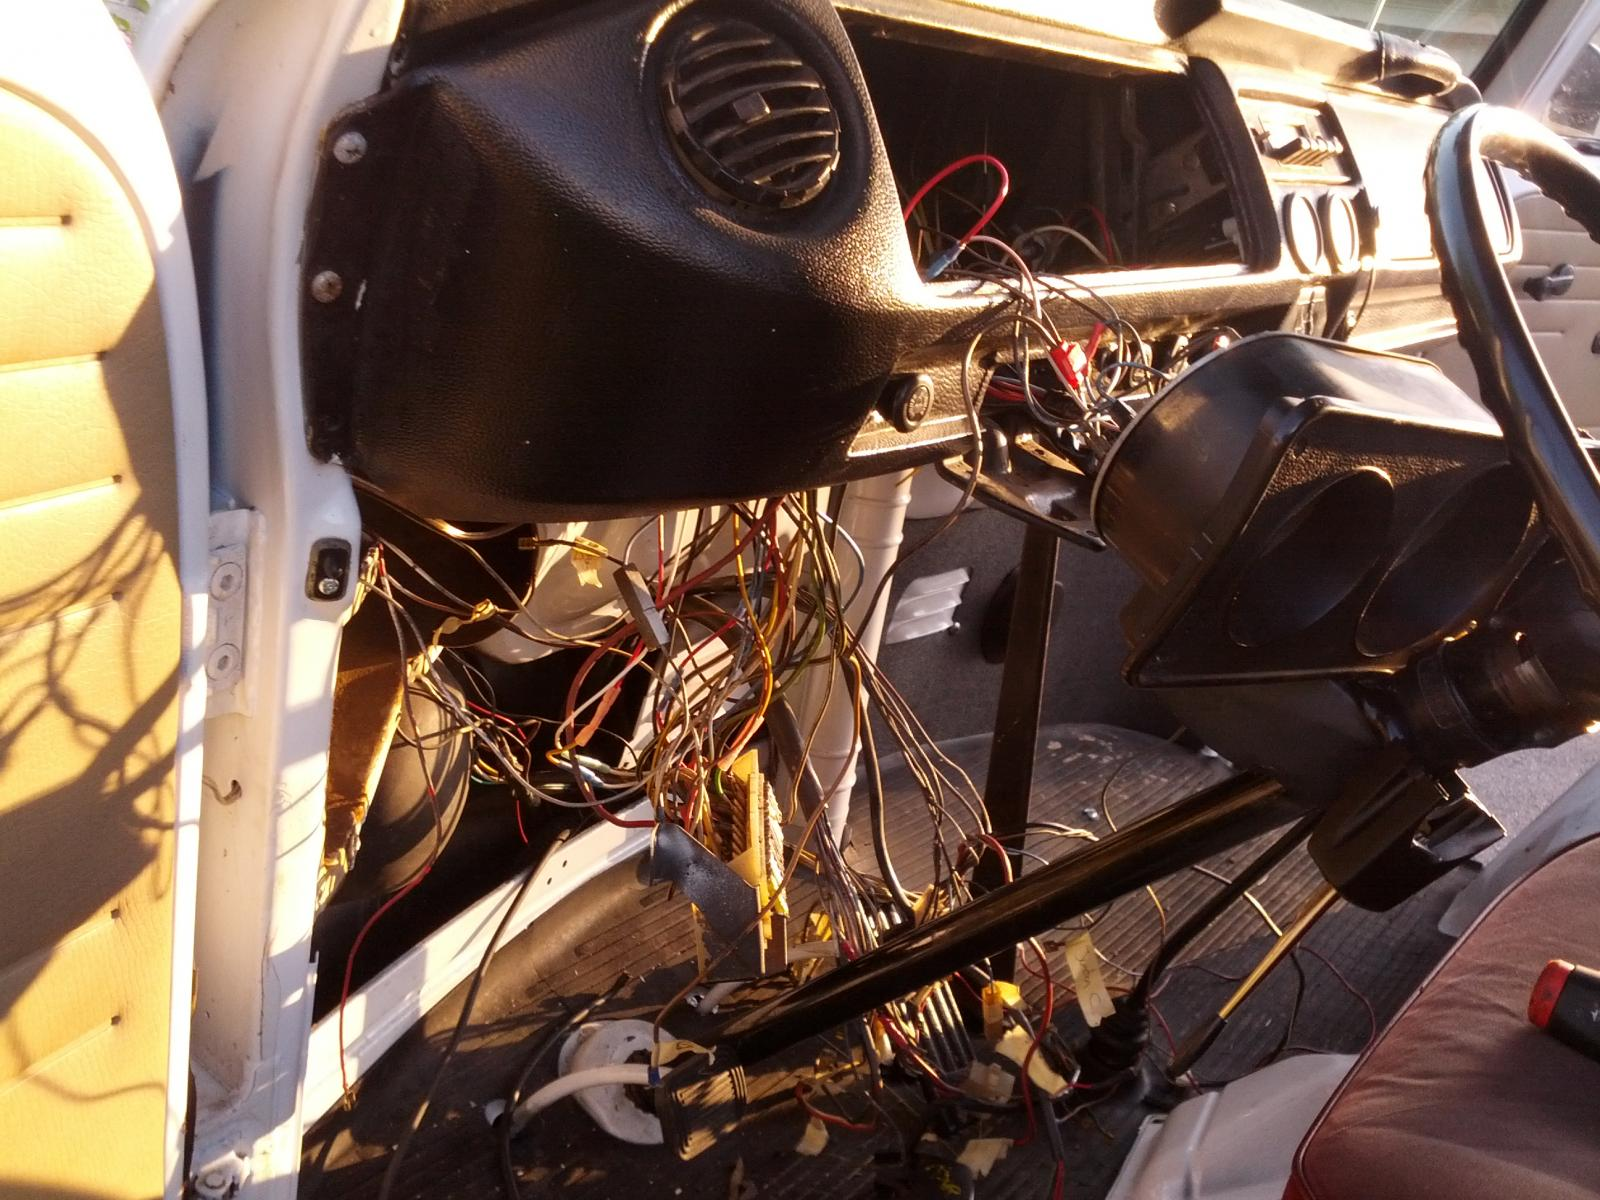 Rebuiltmotor Back In I Have A Ground Wirewiring Harnessgos